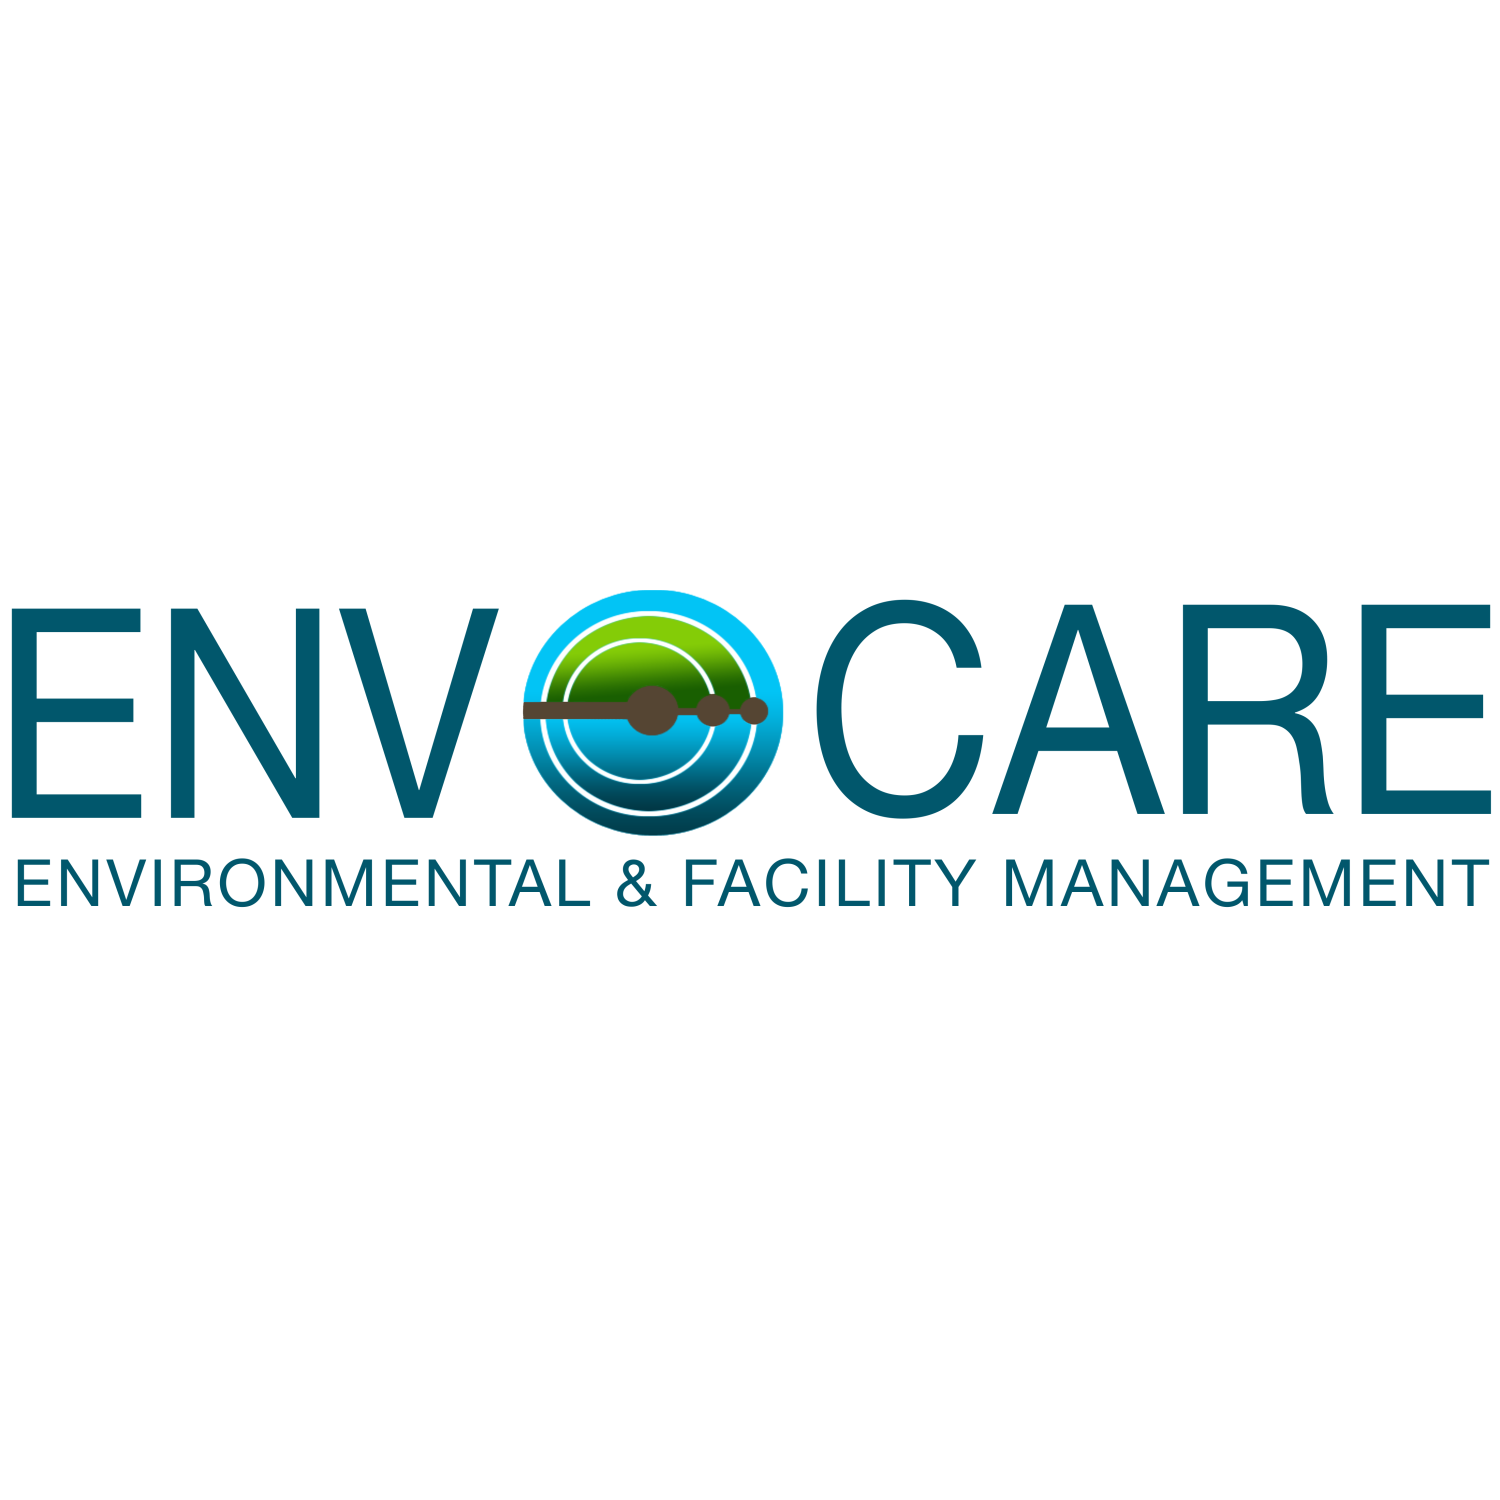 Envocare Environmental & Facility Management